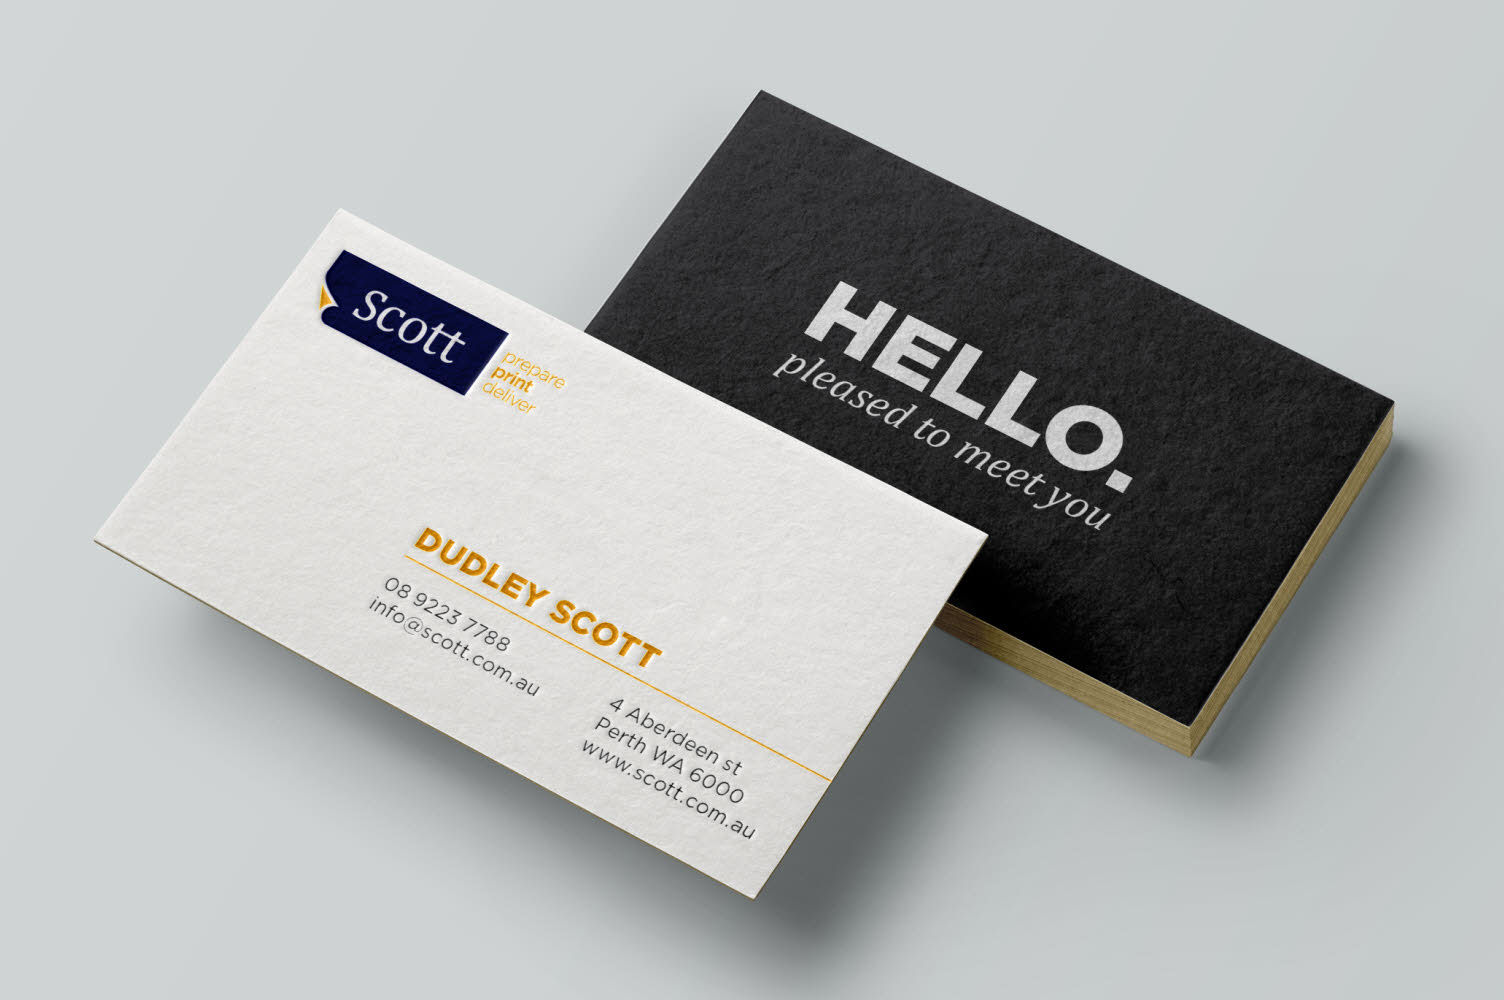 Business card printing perth wa scott print whether you hand over a plain card or well designed embellished business card it is a reflection on your business and sets the standard of expectation colourmoves Image collections